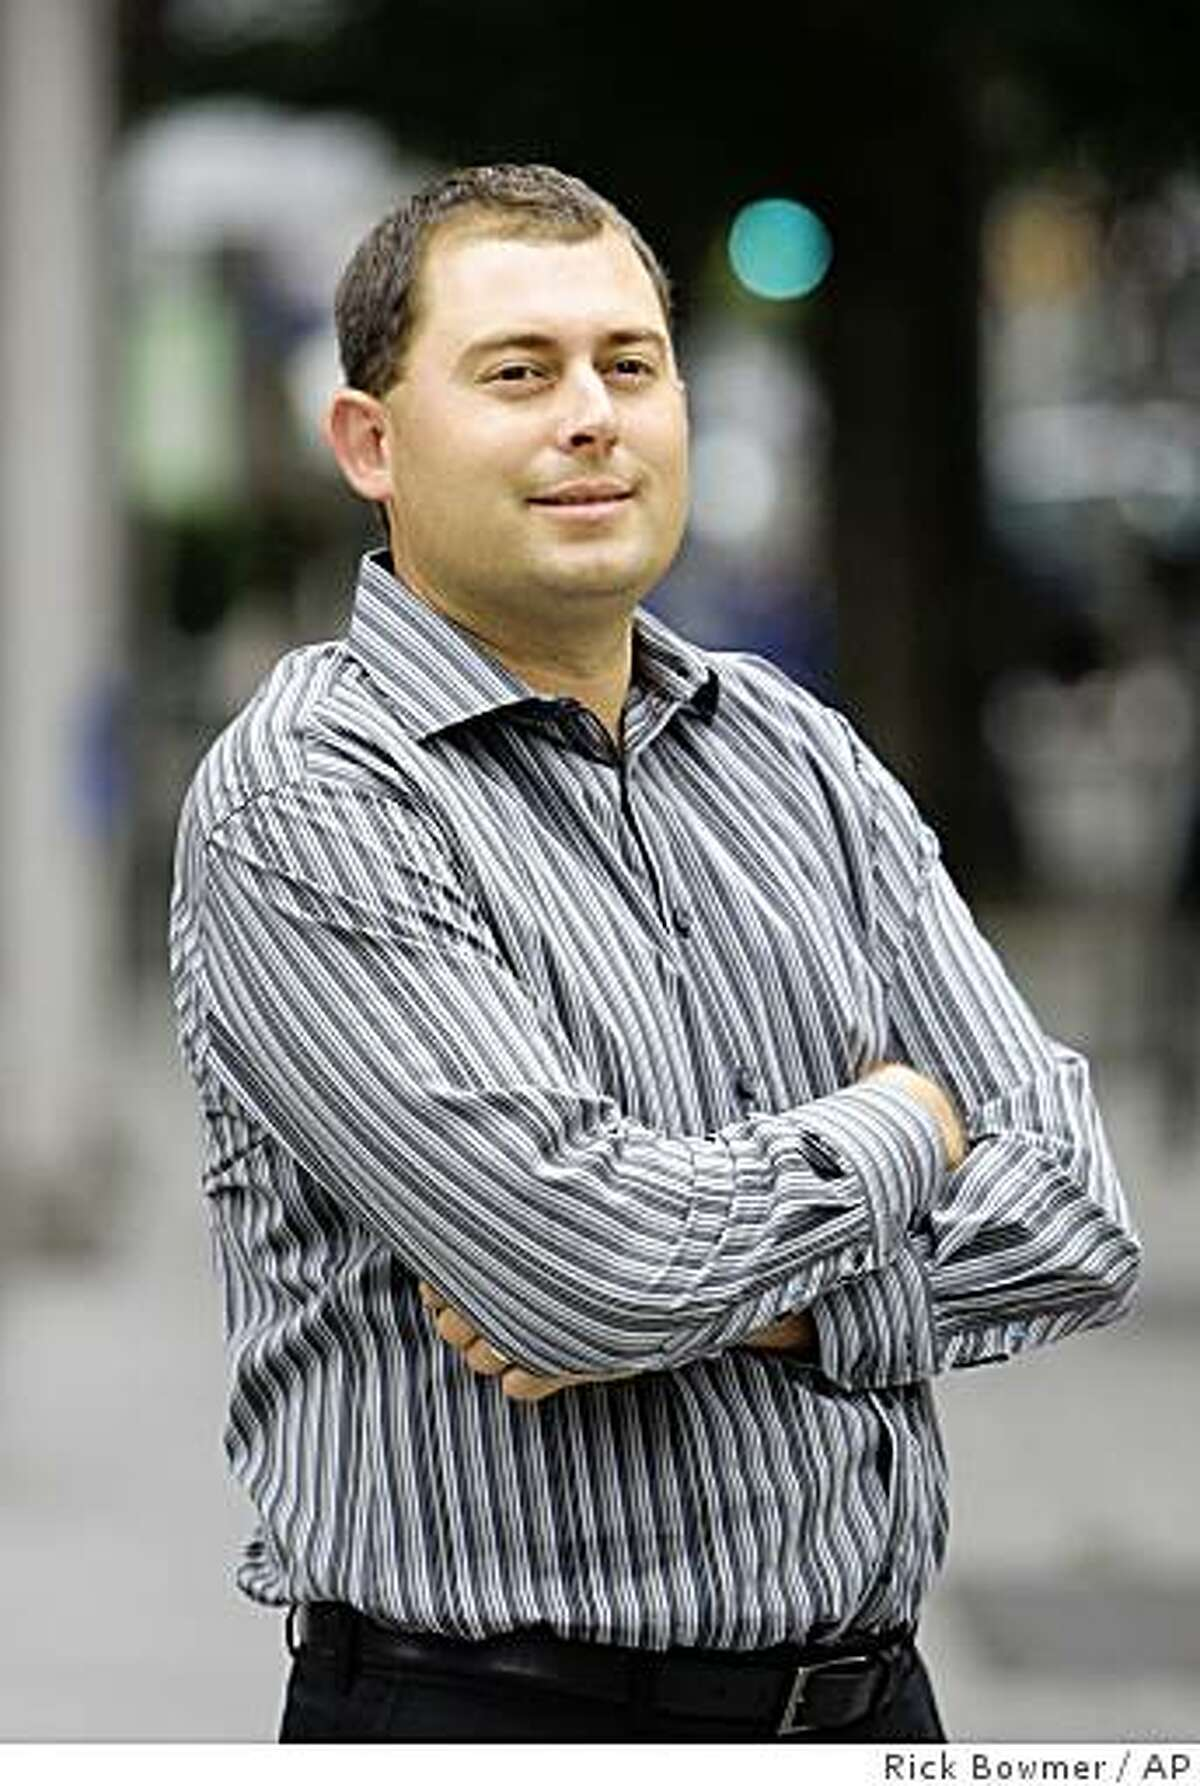 In this photograph taken on Thursday, July 9, 2009, Dusty Schmidt looks on as he stands in downtown Portland, Ore. Schmidt says all he wants to do is be able to compete as an amateur golfer. The USGA maintains that the online poker player gave up his amateur status when he issued a $1 million challenge to anyone who could beat him at 72 holes of golf and a few hands of poker. Now it's up to a judge to decide.(AP Photo/Rick Bowmer)